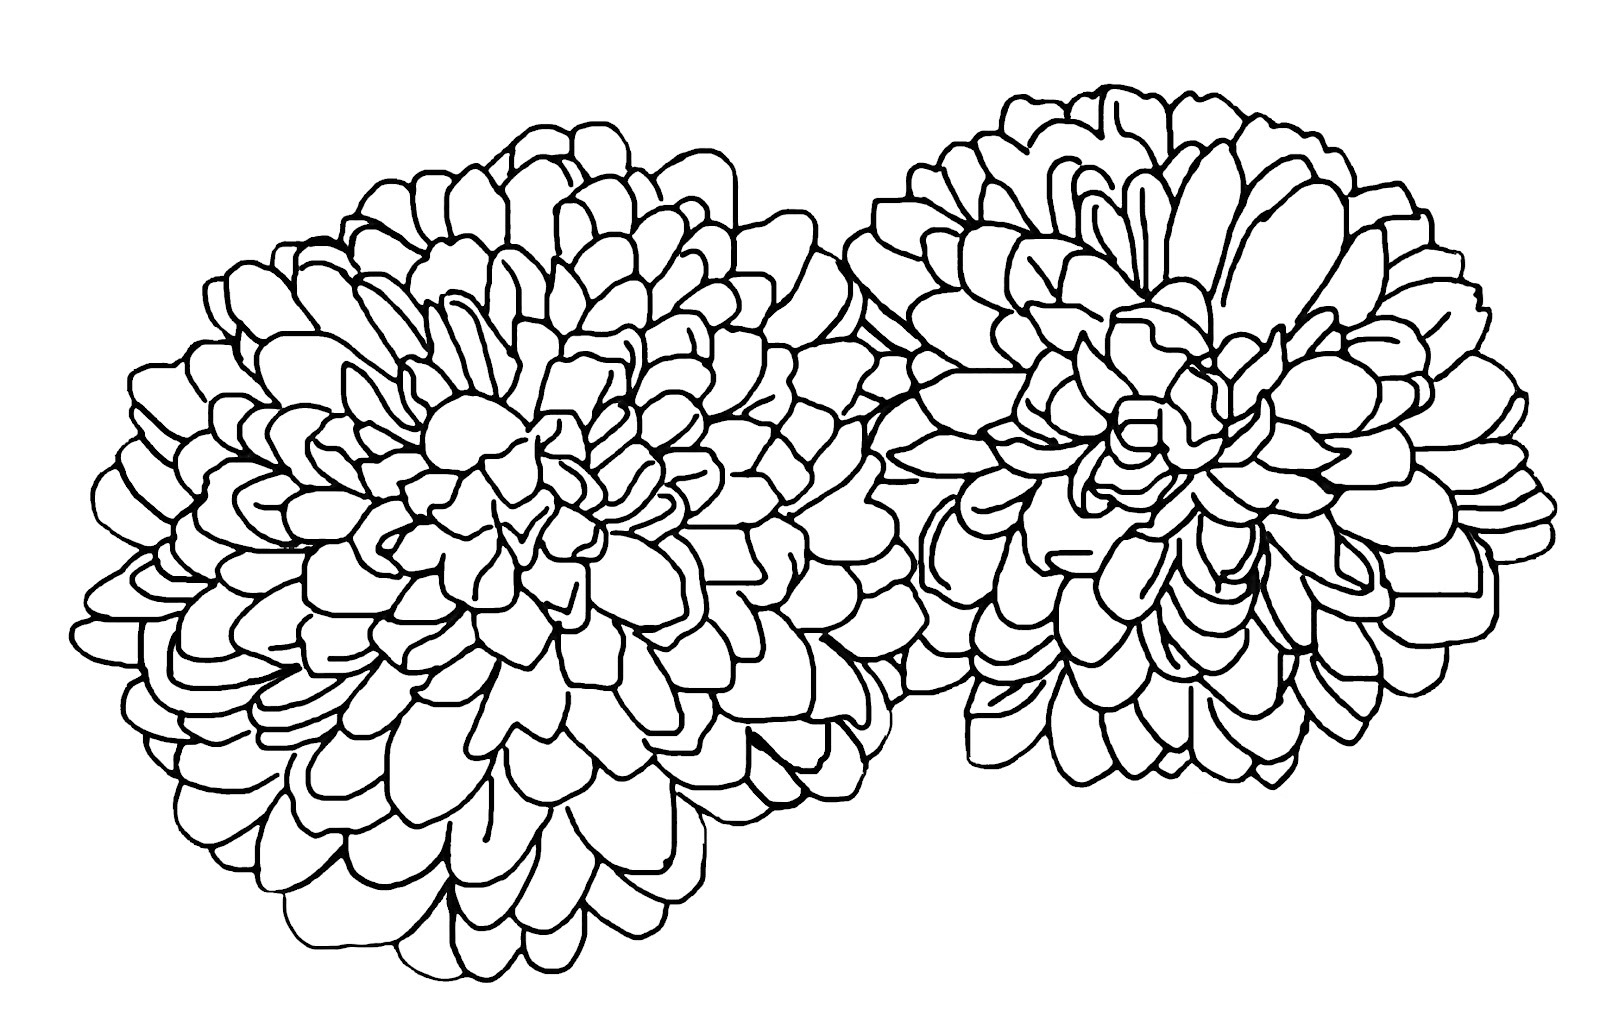 Chrysanthemum coloring pages to